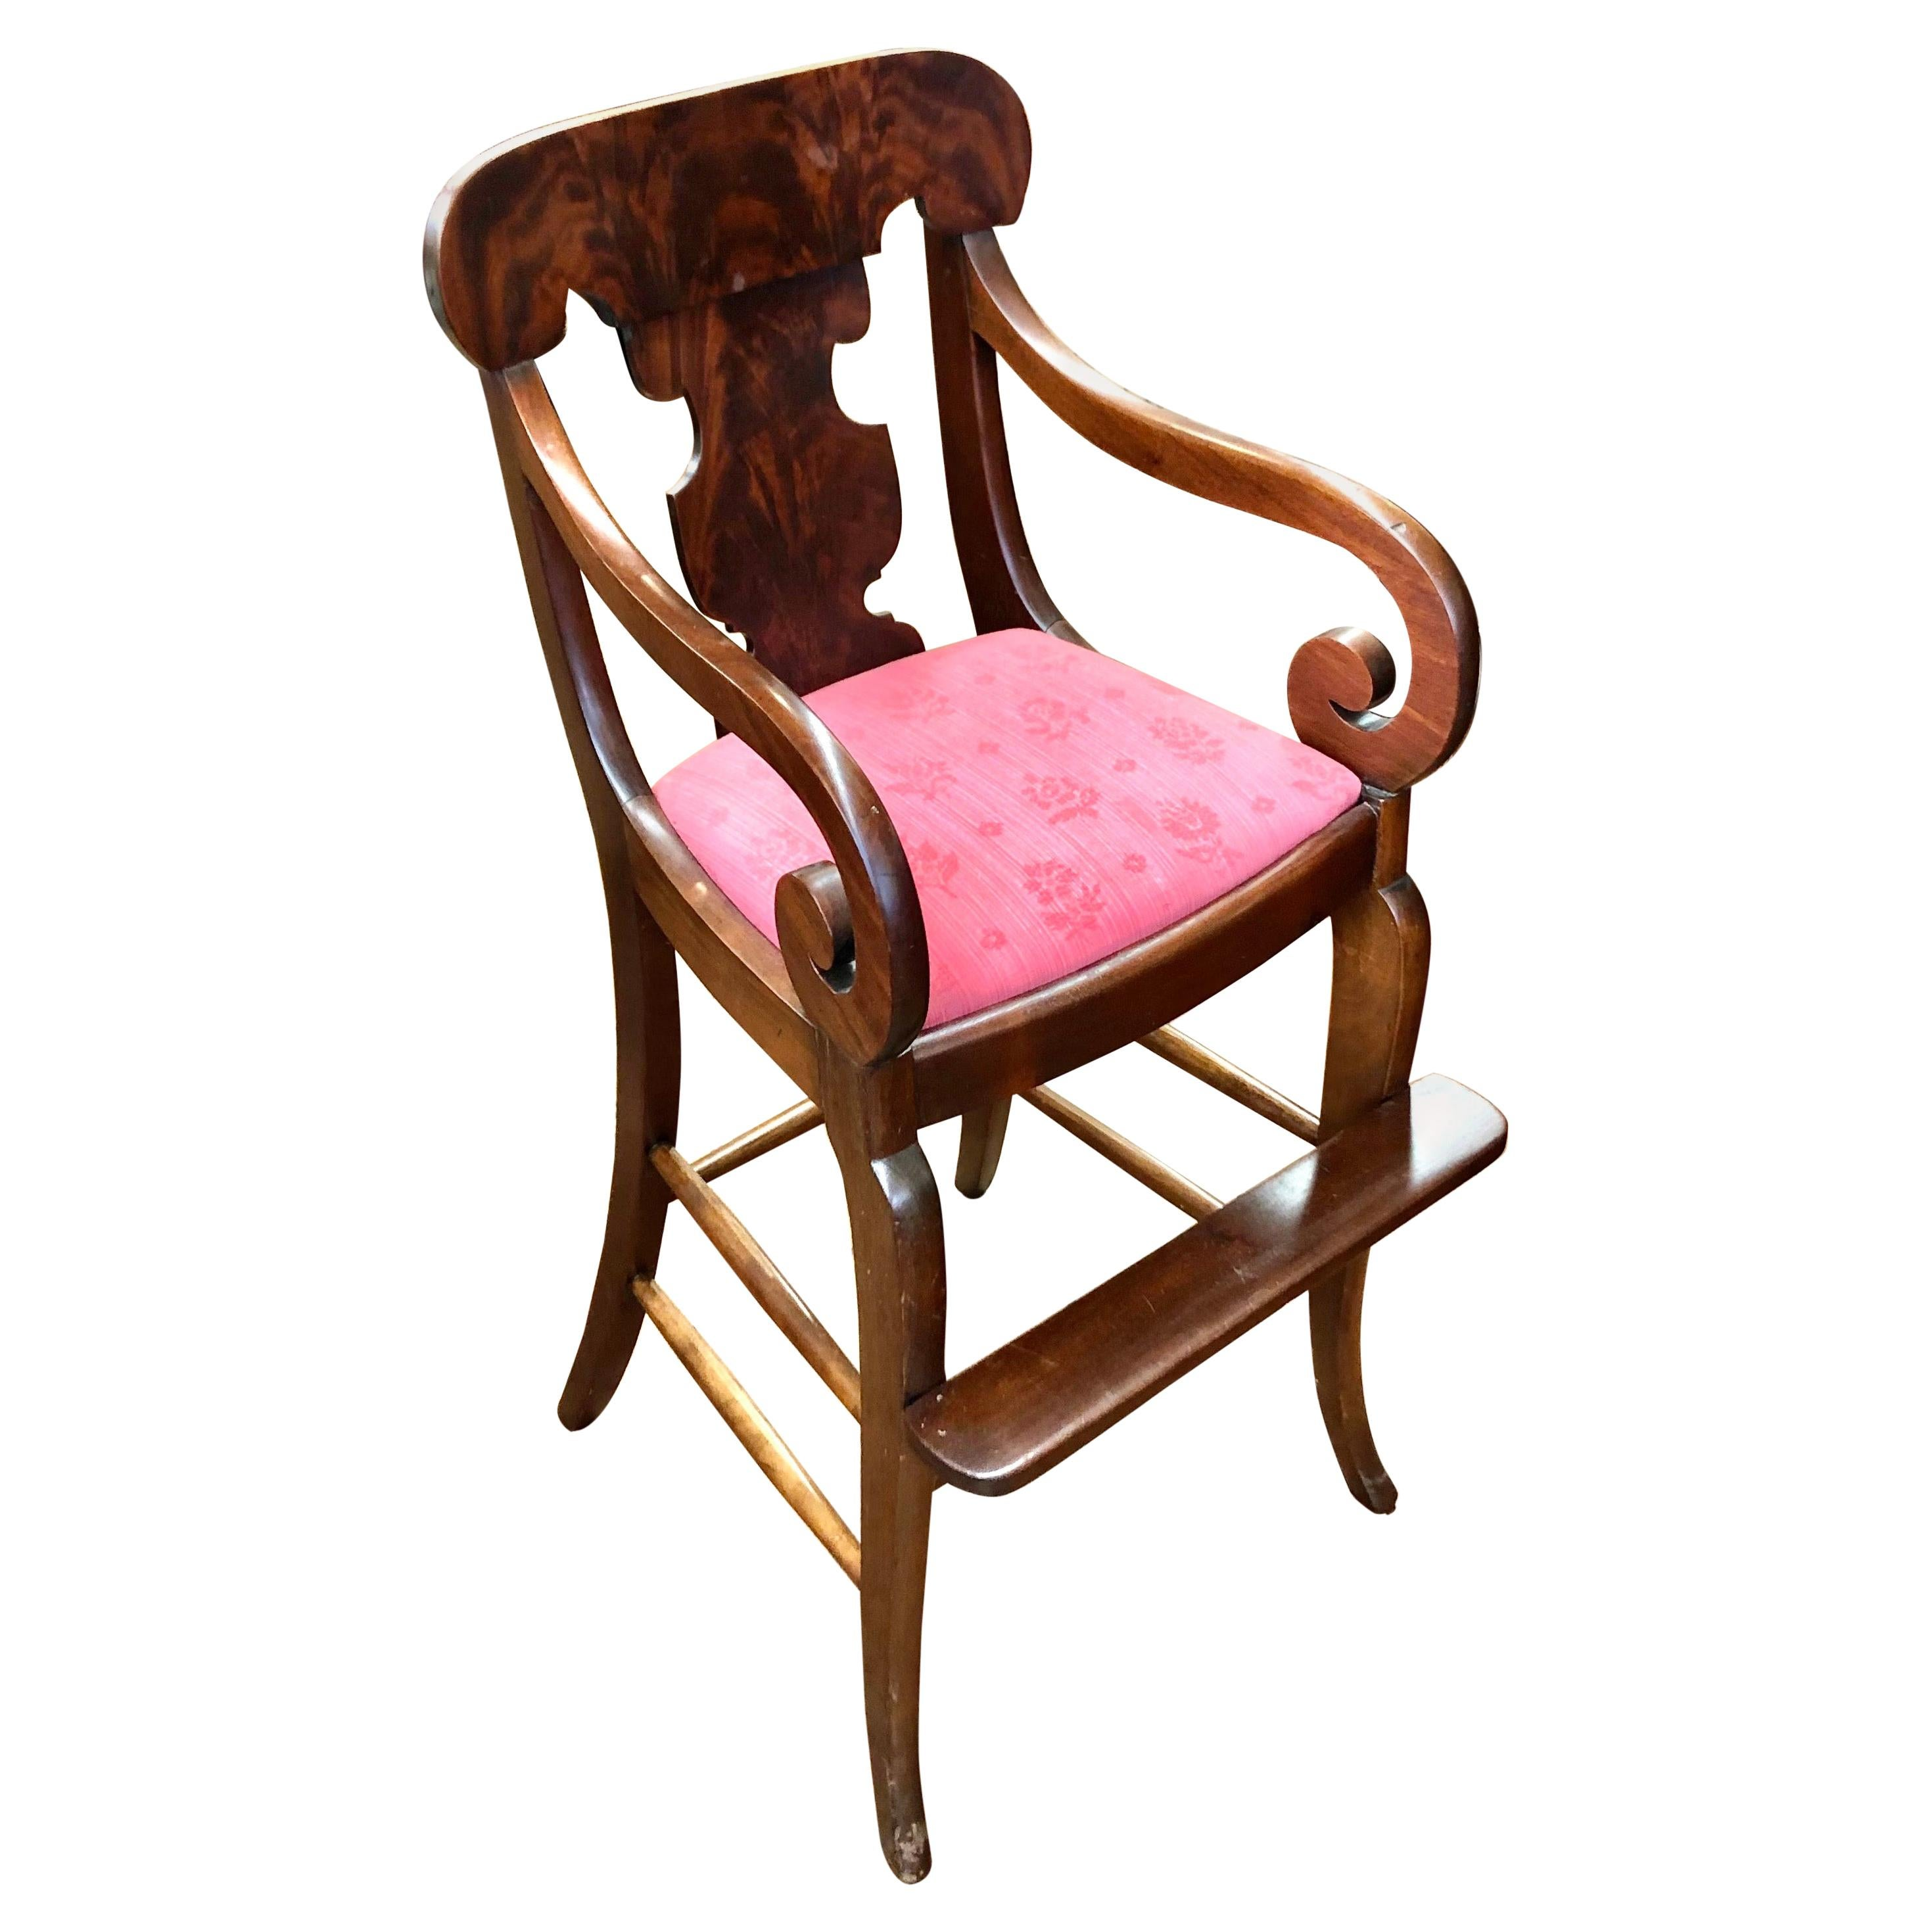 Rare and Fine Antique American Flame Mahogany Empire Style Child's Highchair